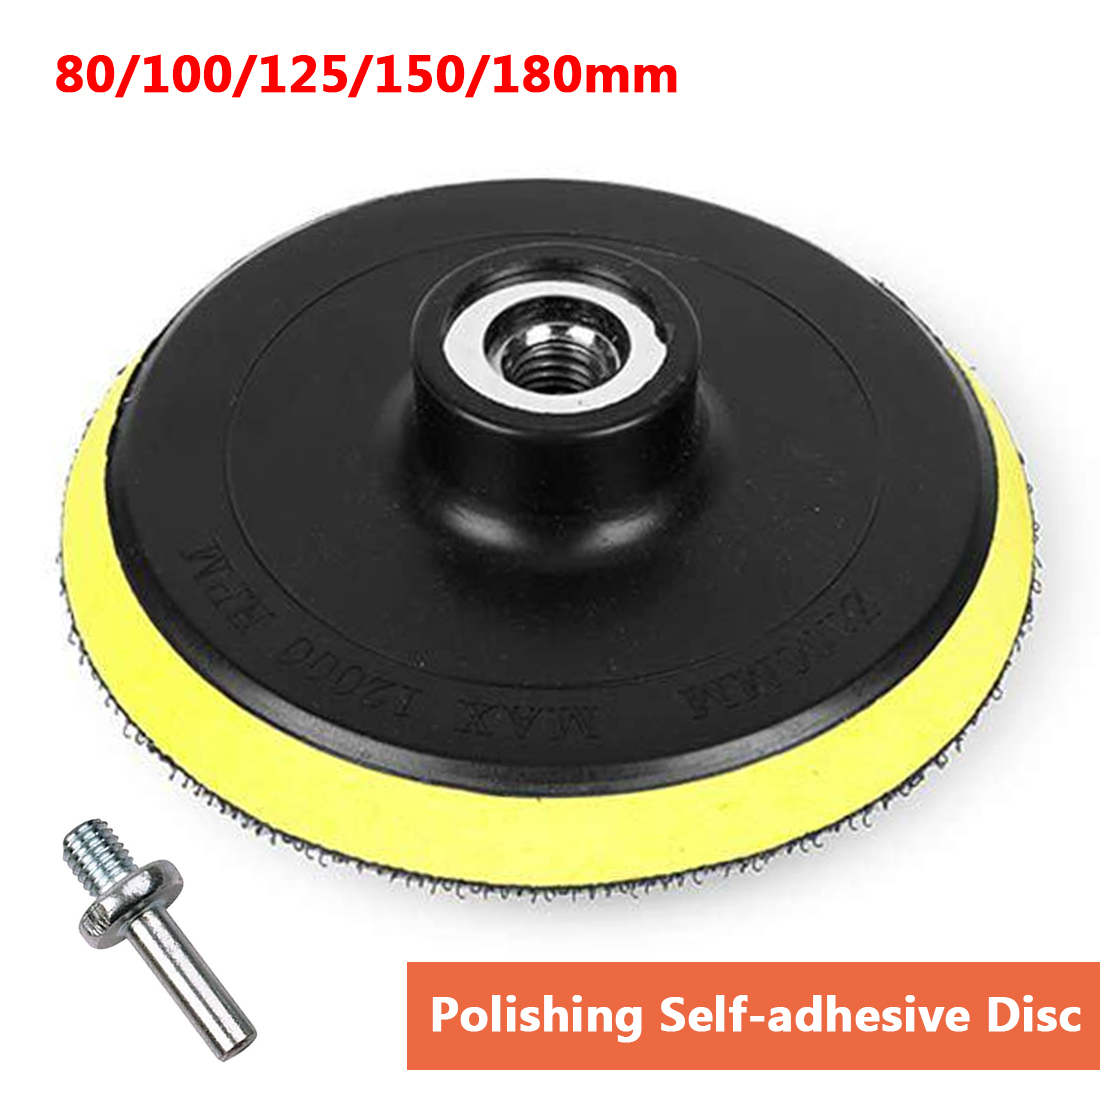 80-180mm Polishing Self-adhesive Disc Polishing Sandpaper Sheet Adhesive Disc Chuck Angle Grinder Sticky Plate For Car